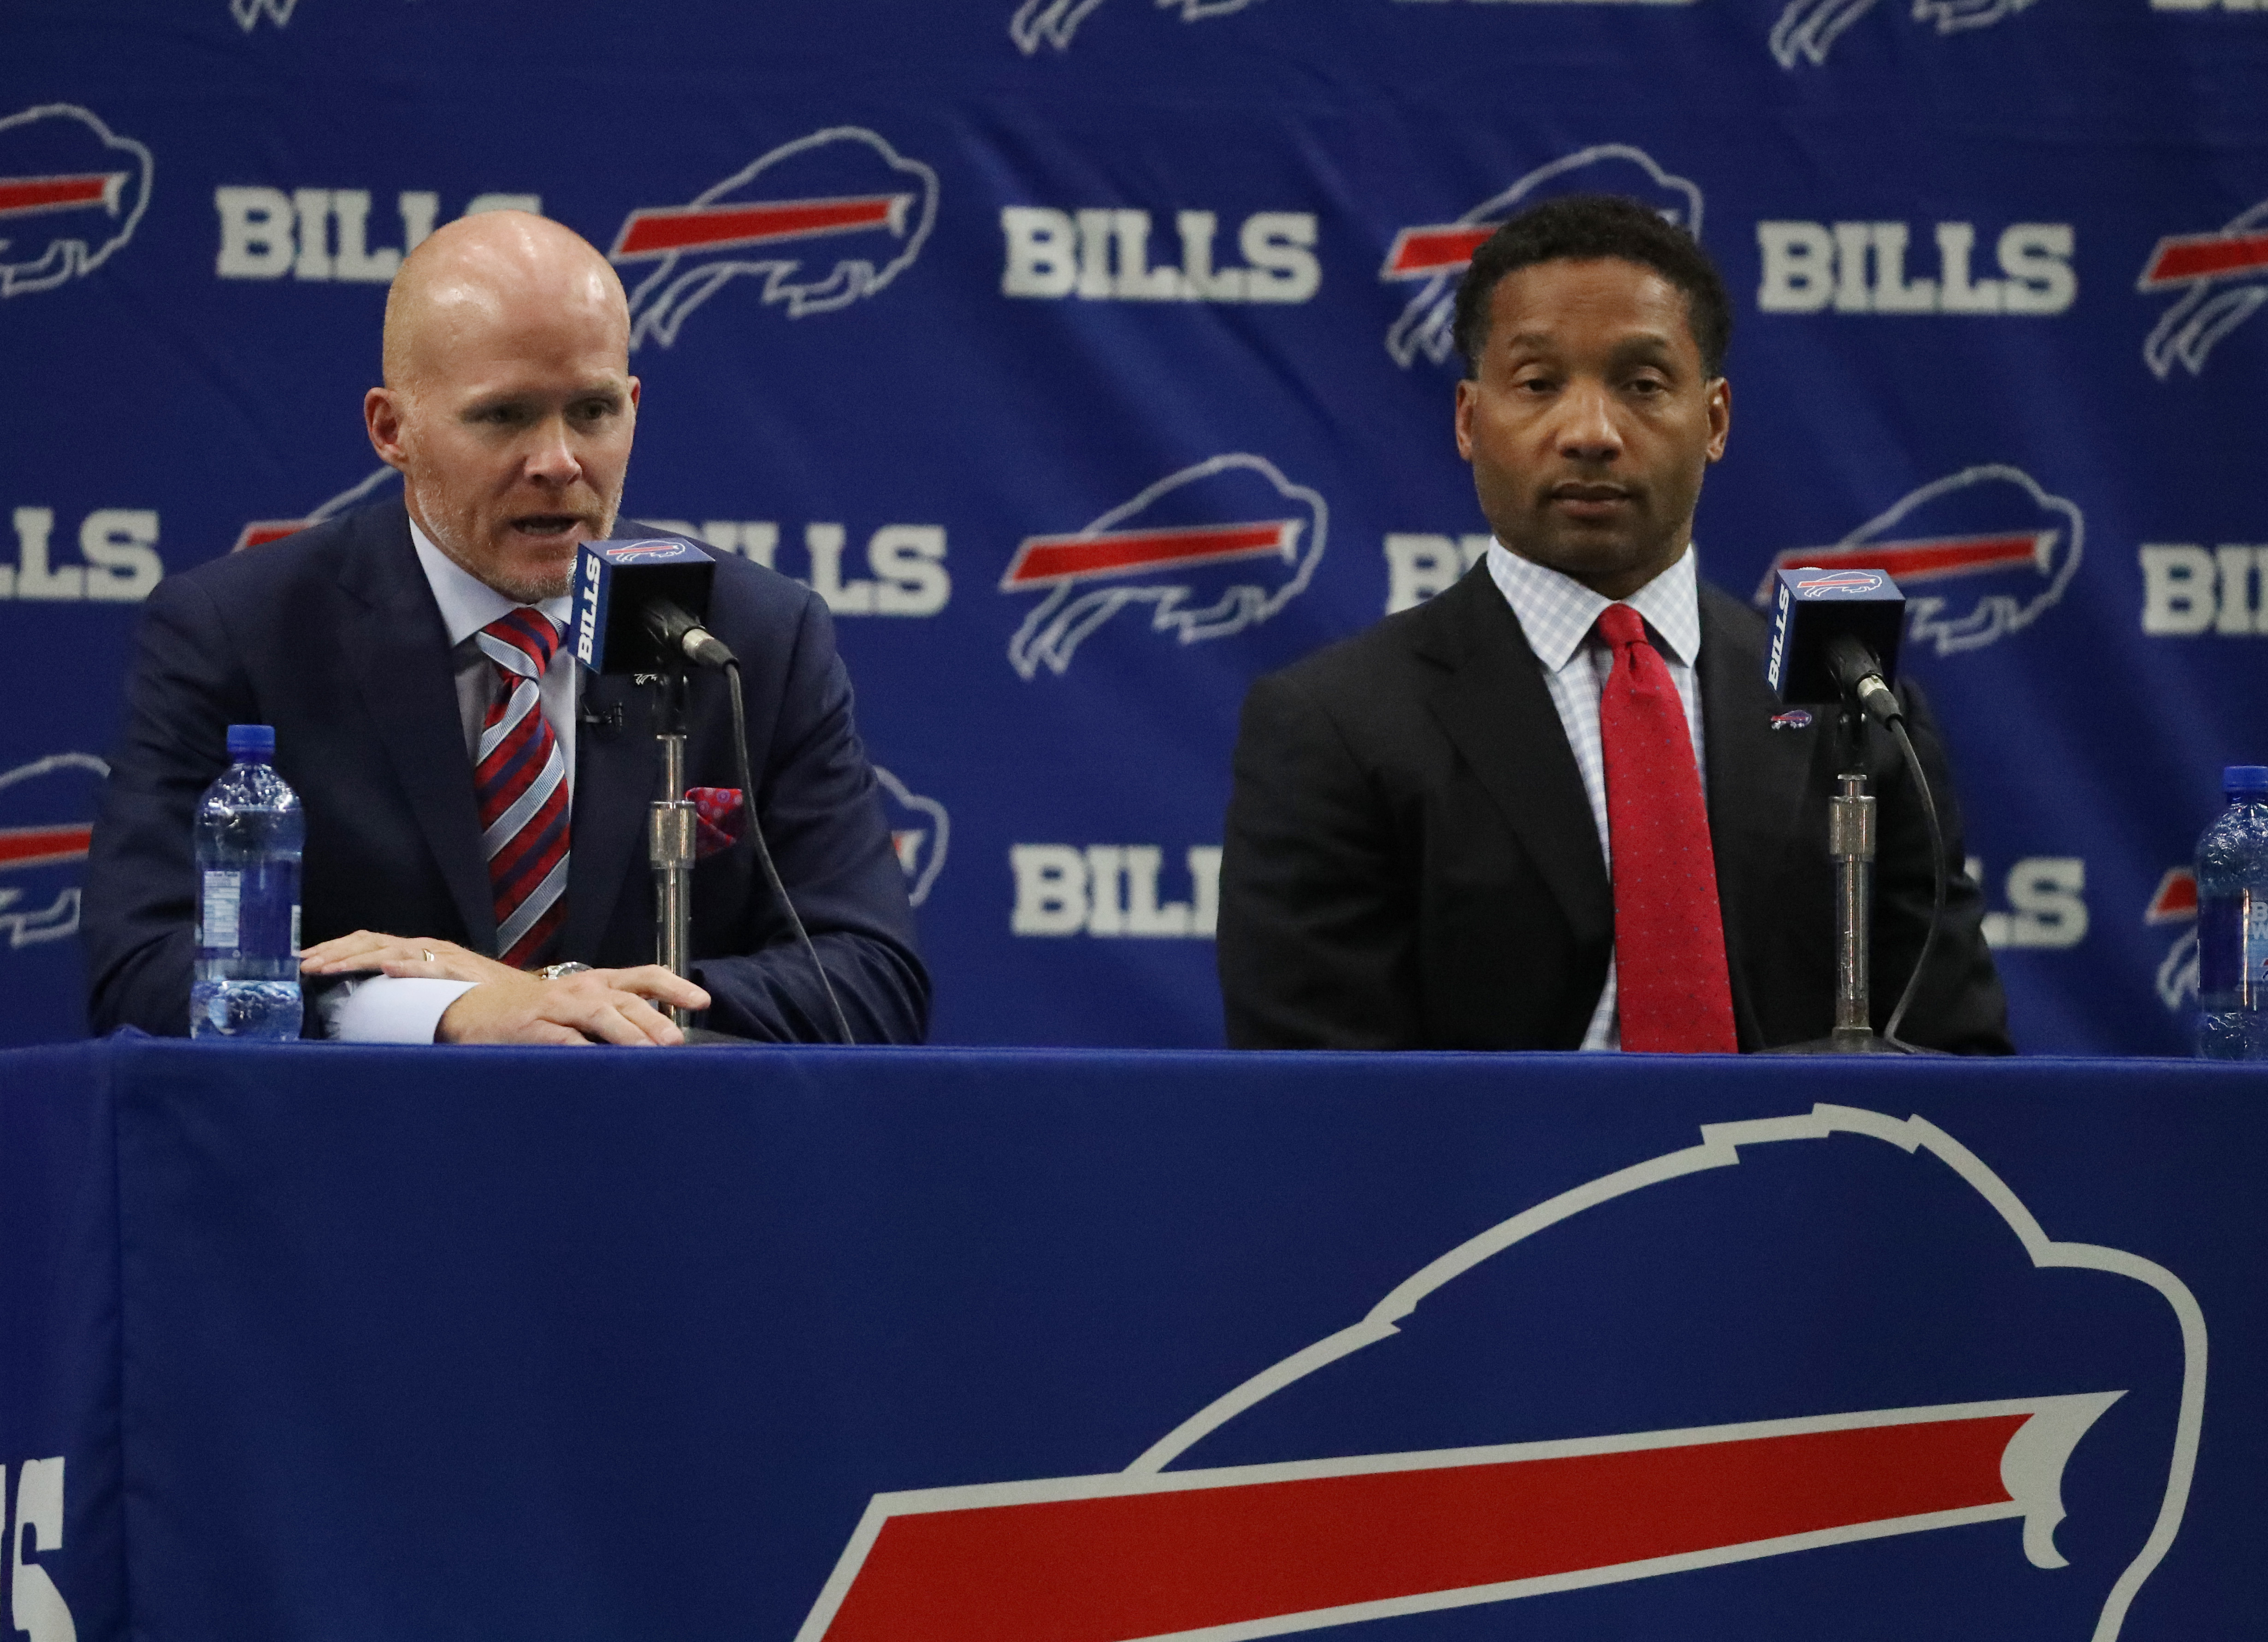 New Bills coach Sean McDermott has insisted he will team with General Manager Doug Whaley and others to decide on the team's first-round draft pick. (James P. McCoy/Buffalo News)